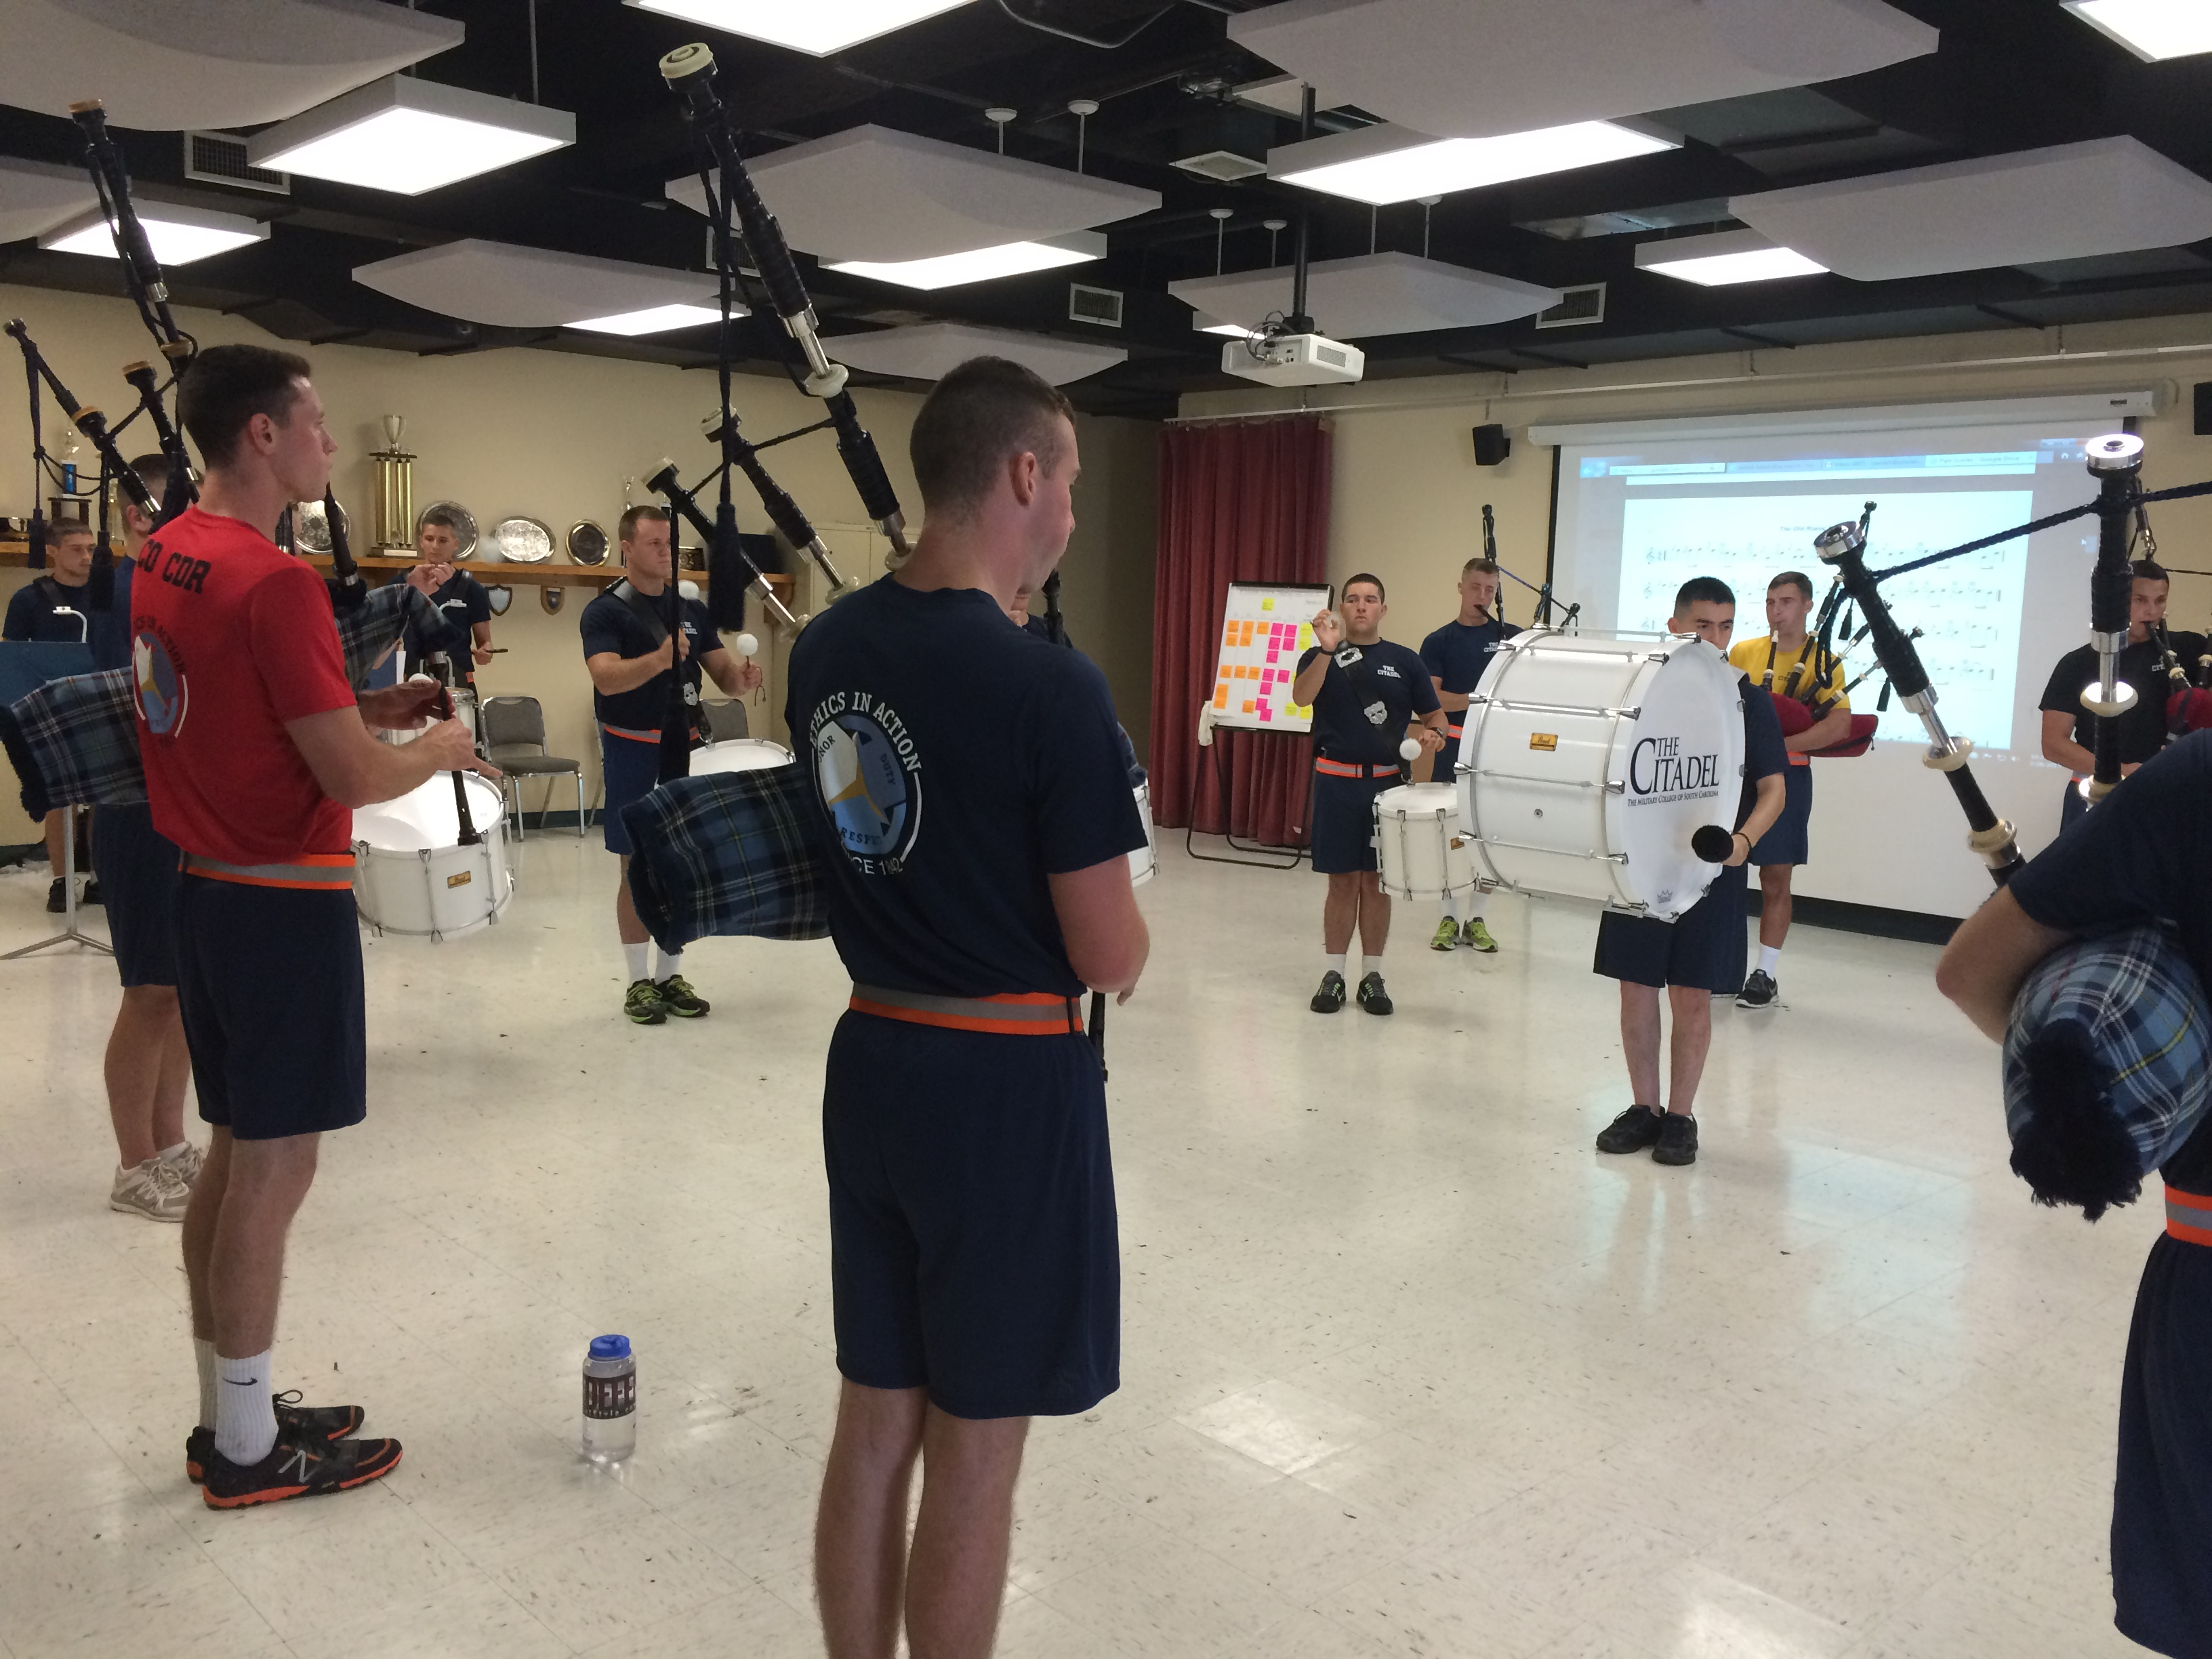 The-Citadel-Pipes-Practicing-Pipes-Band-2015